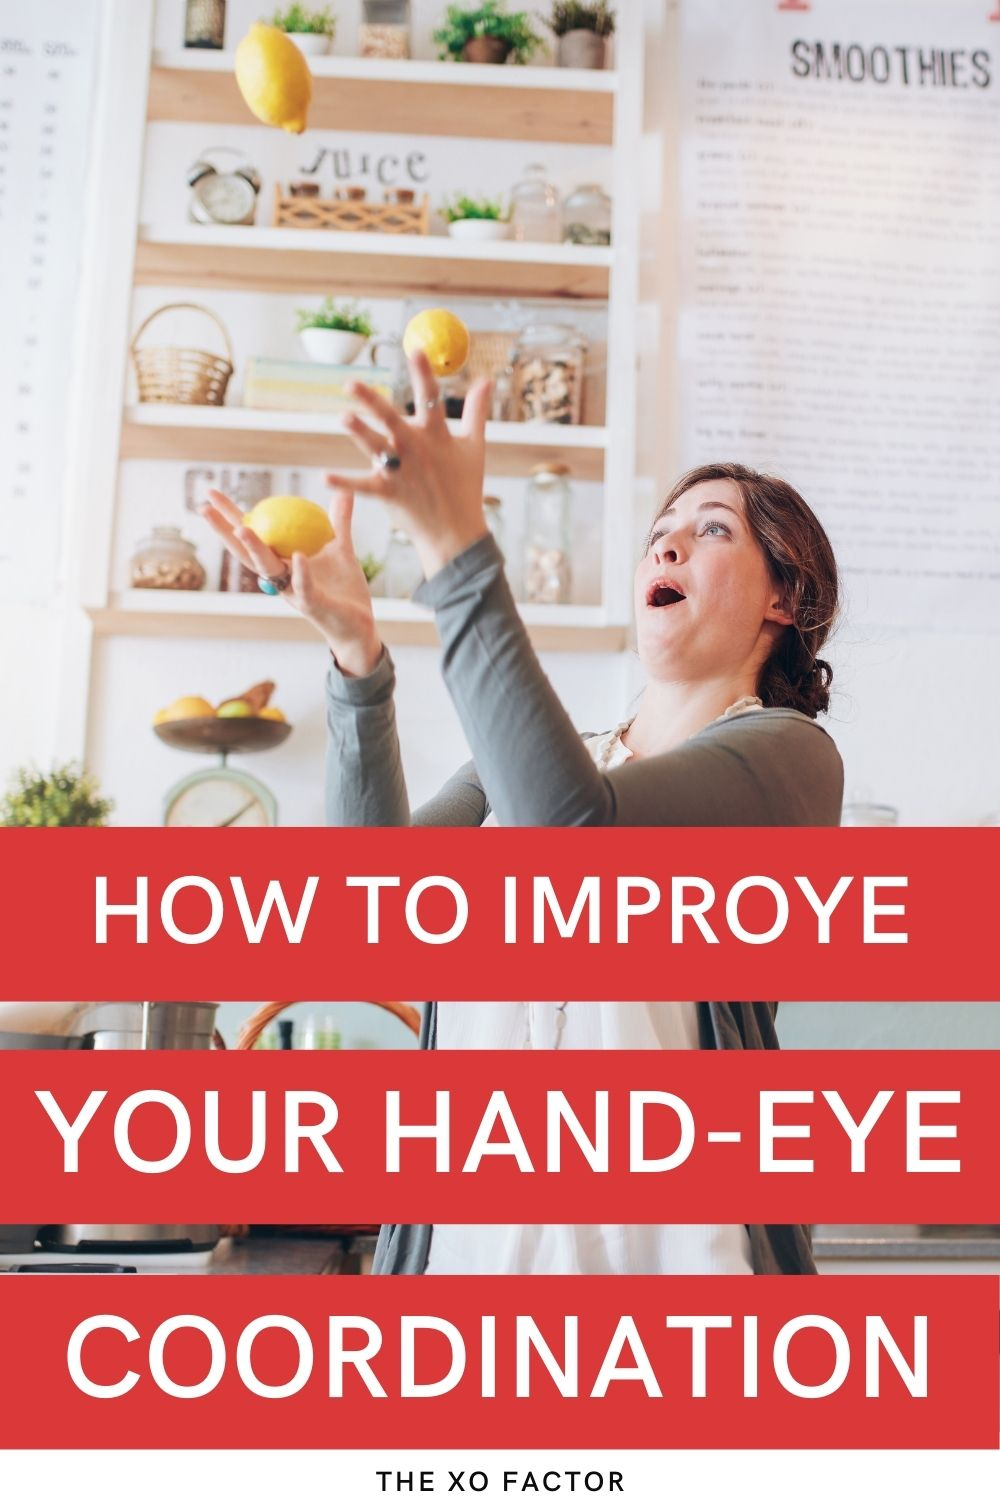 how to improve hand-eye coordination